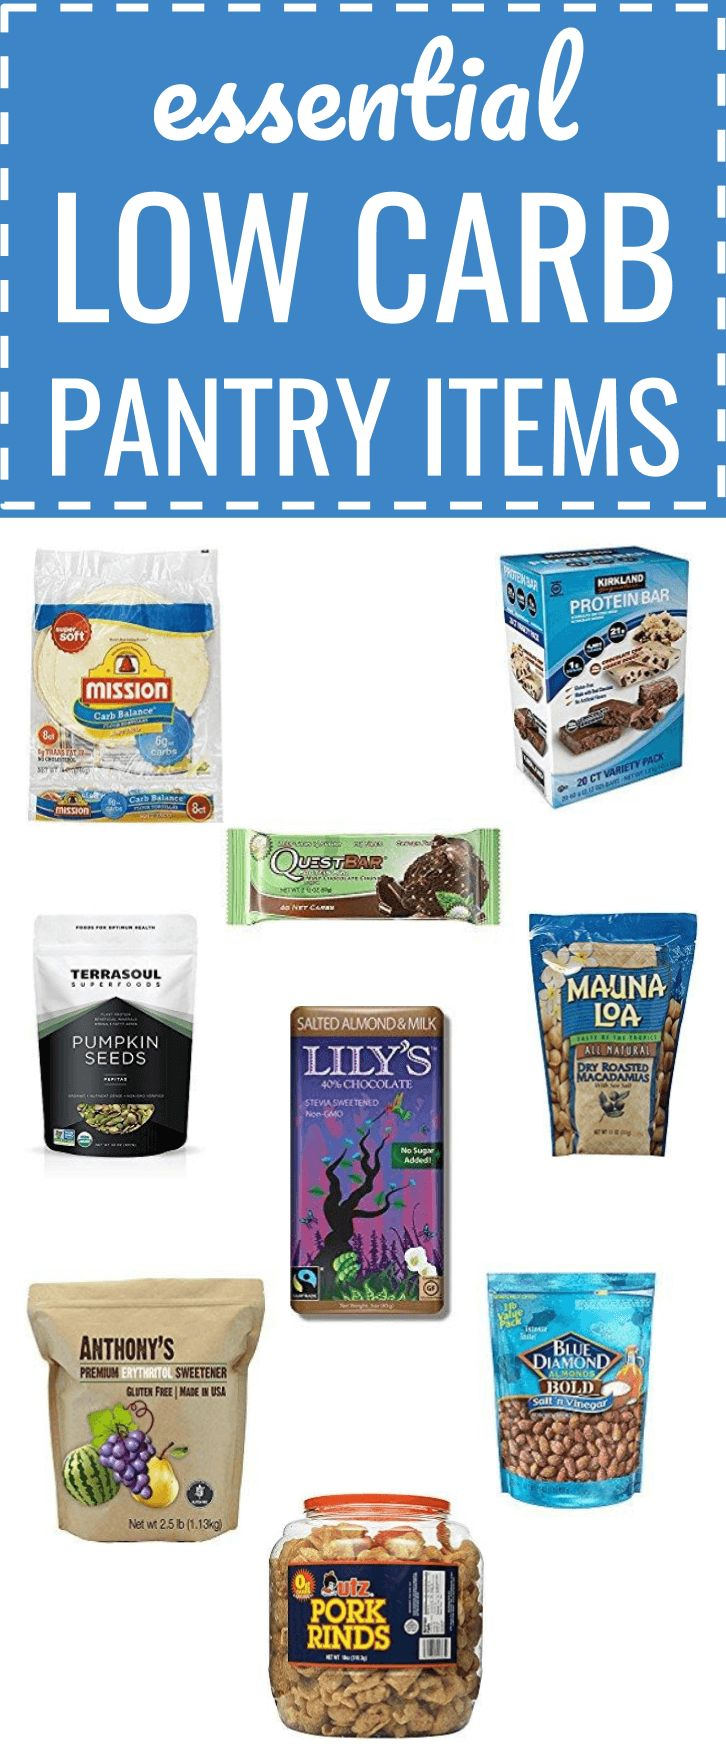 Low carb pantry stuffers, items, and products for a healthy keto lifestyle. staples / must have / list / essential / basic / budget / ketogenic / household / for two / paleo / clean eating / cheap / weekly / home / diet / food / basic / ideas / template / free / ultimate / monthly / weightloss / pantry / easy / essentials / kitchen / simple / categories / dinner / atkins / ideas / meals / recipes / tips / foods / gluten free / paleo #pantry #list #ketogenic